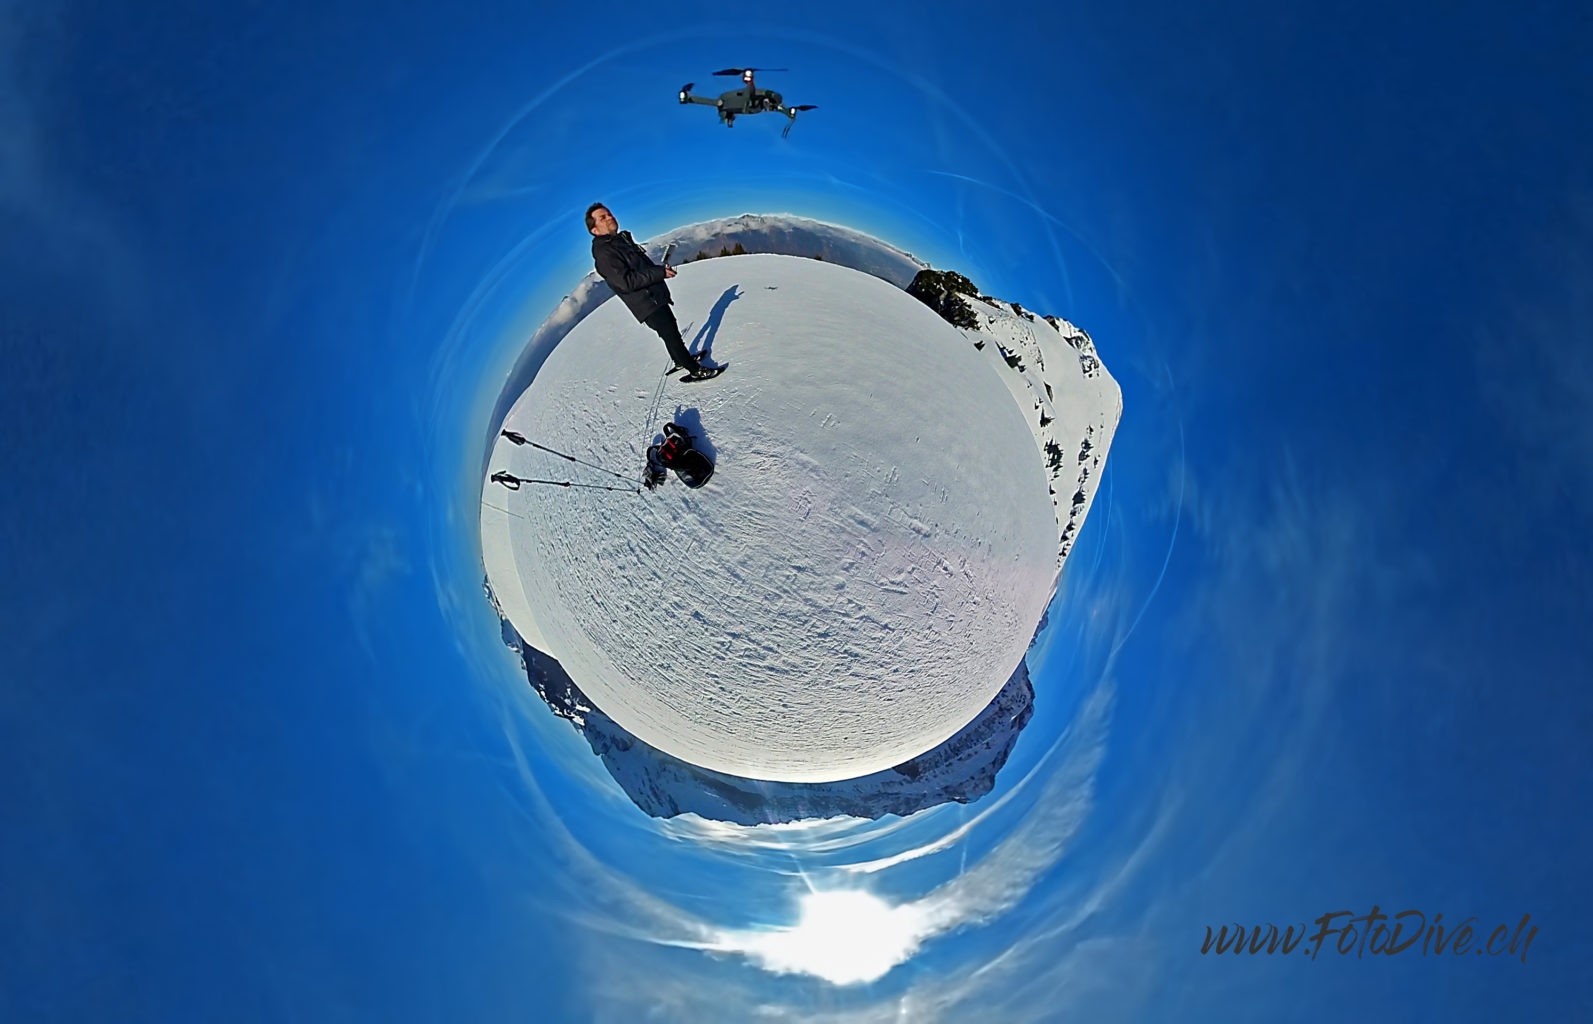 360 Photography, Flying the Mavic Pro, Niederbauen Canton Unterwalden - Switzerland